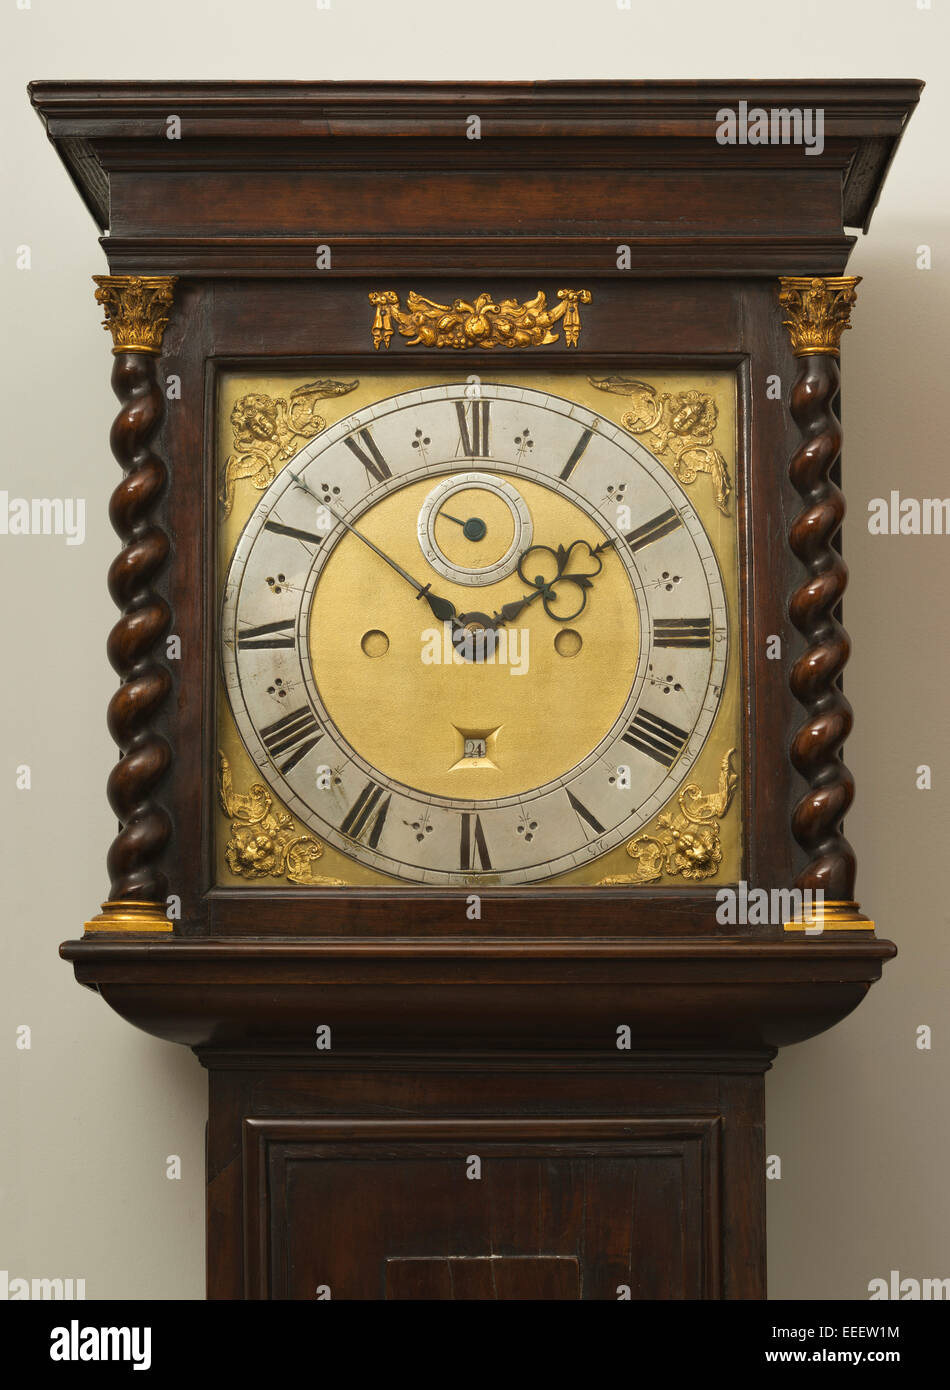 Grandfather/Grandmother clock face, with Roman numerals and twisted wood columns with Corinthian column caps. Long - Stock Image